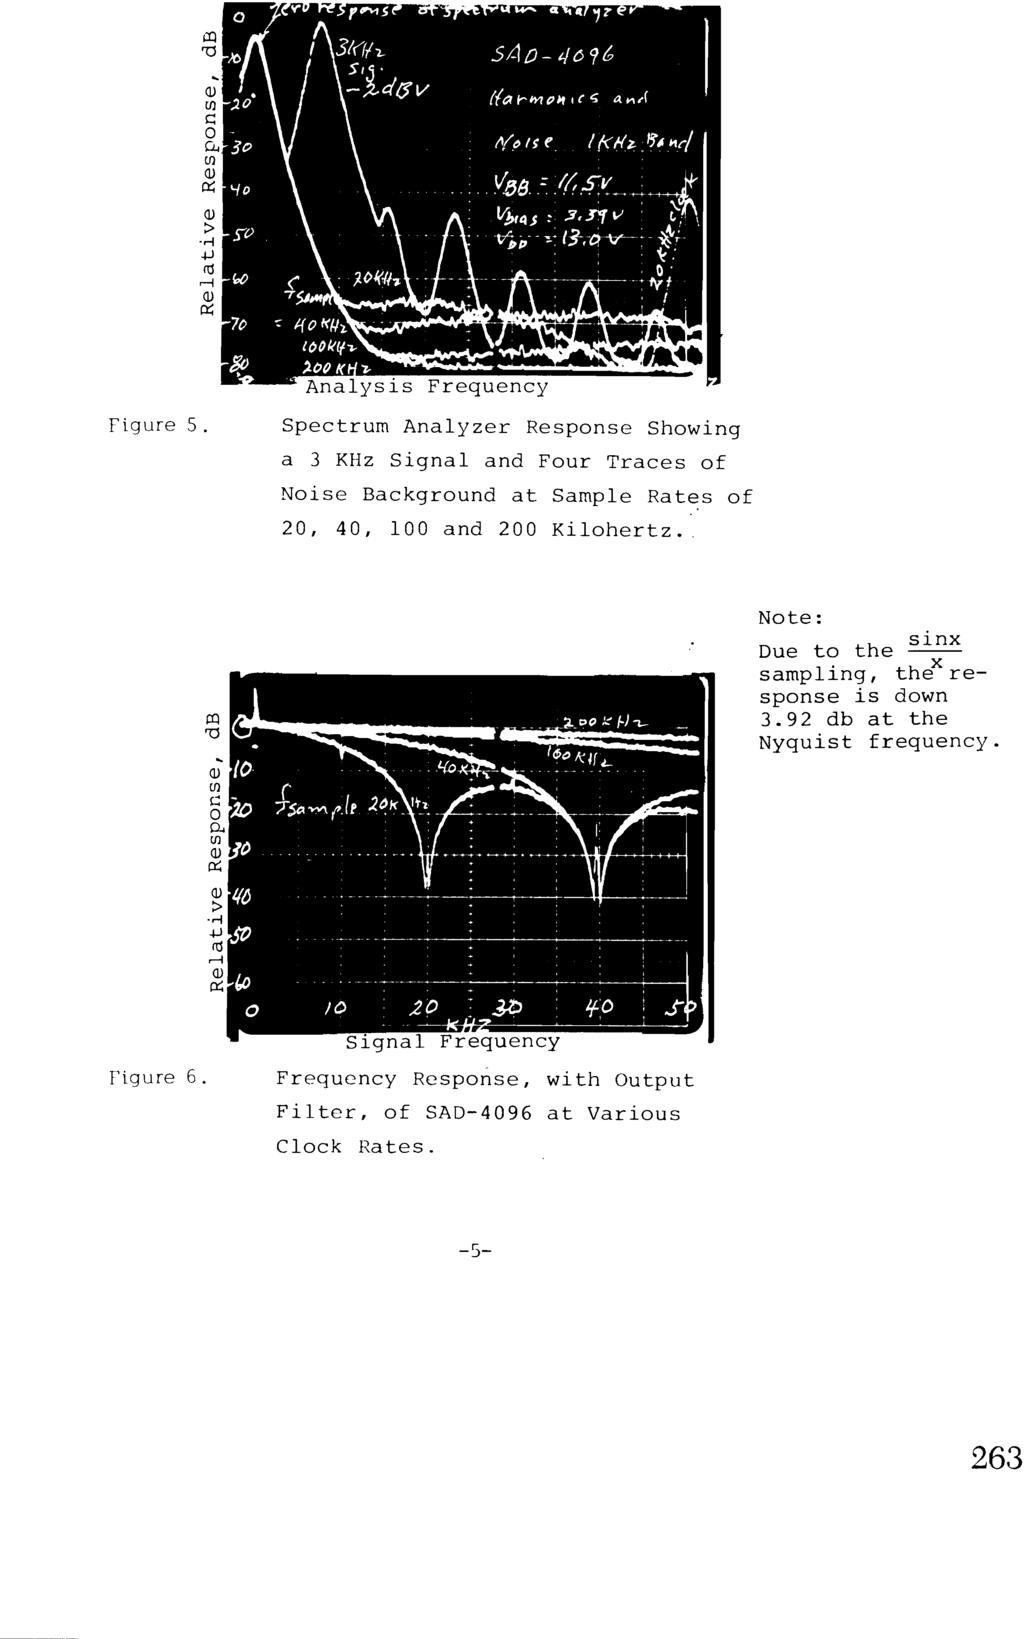 Electronic Music Circuits Pdf Voltage Controlled Low Pass Filter With Lm13600 Ota Circuit Schematic Lioure 5 Spectrum Analyzer Response Showing A 3 Khz Signal And Four Traces